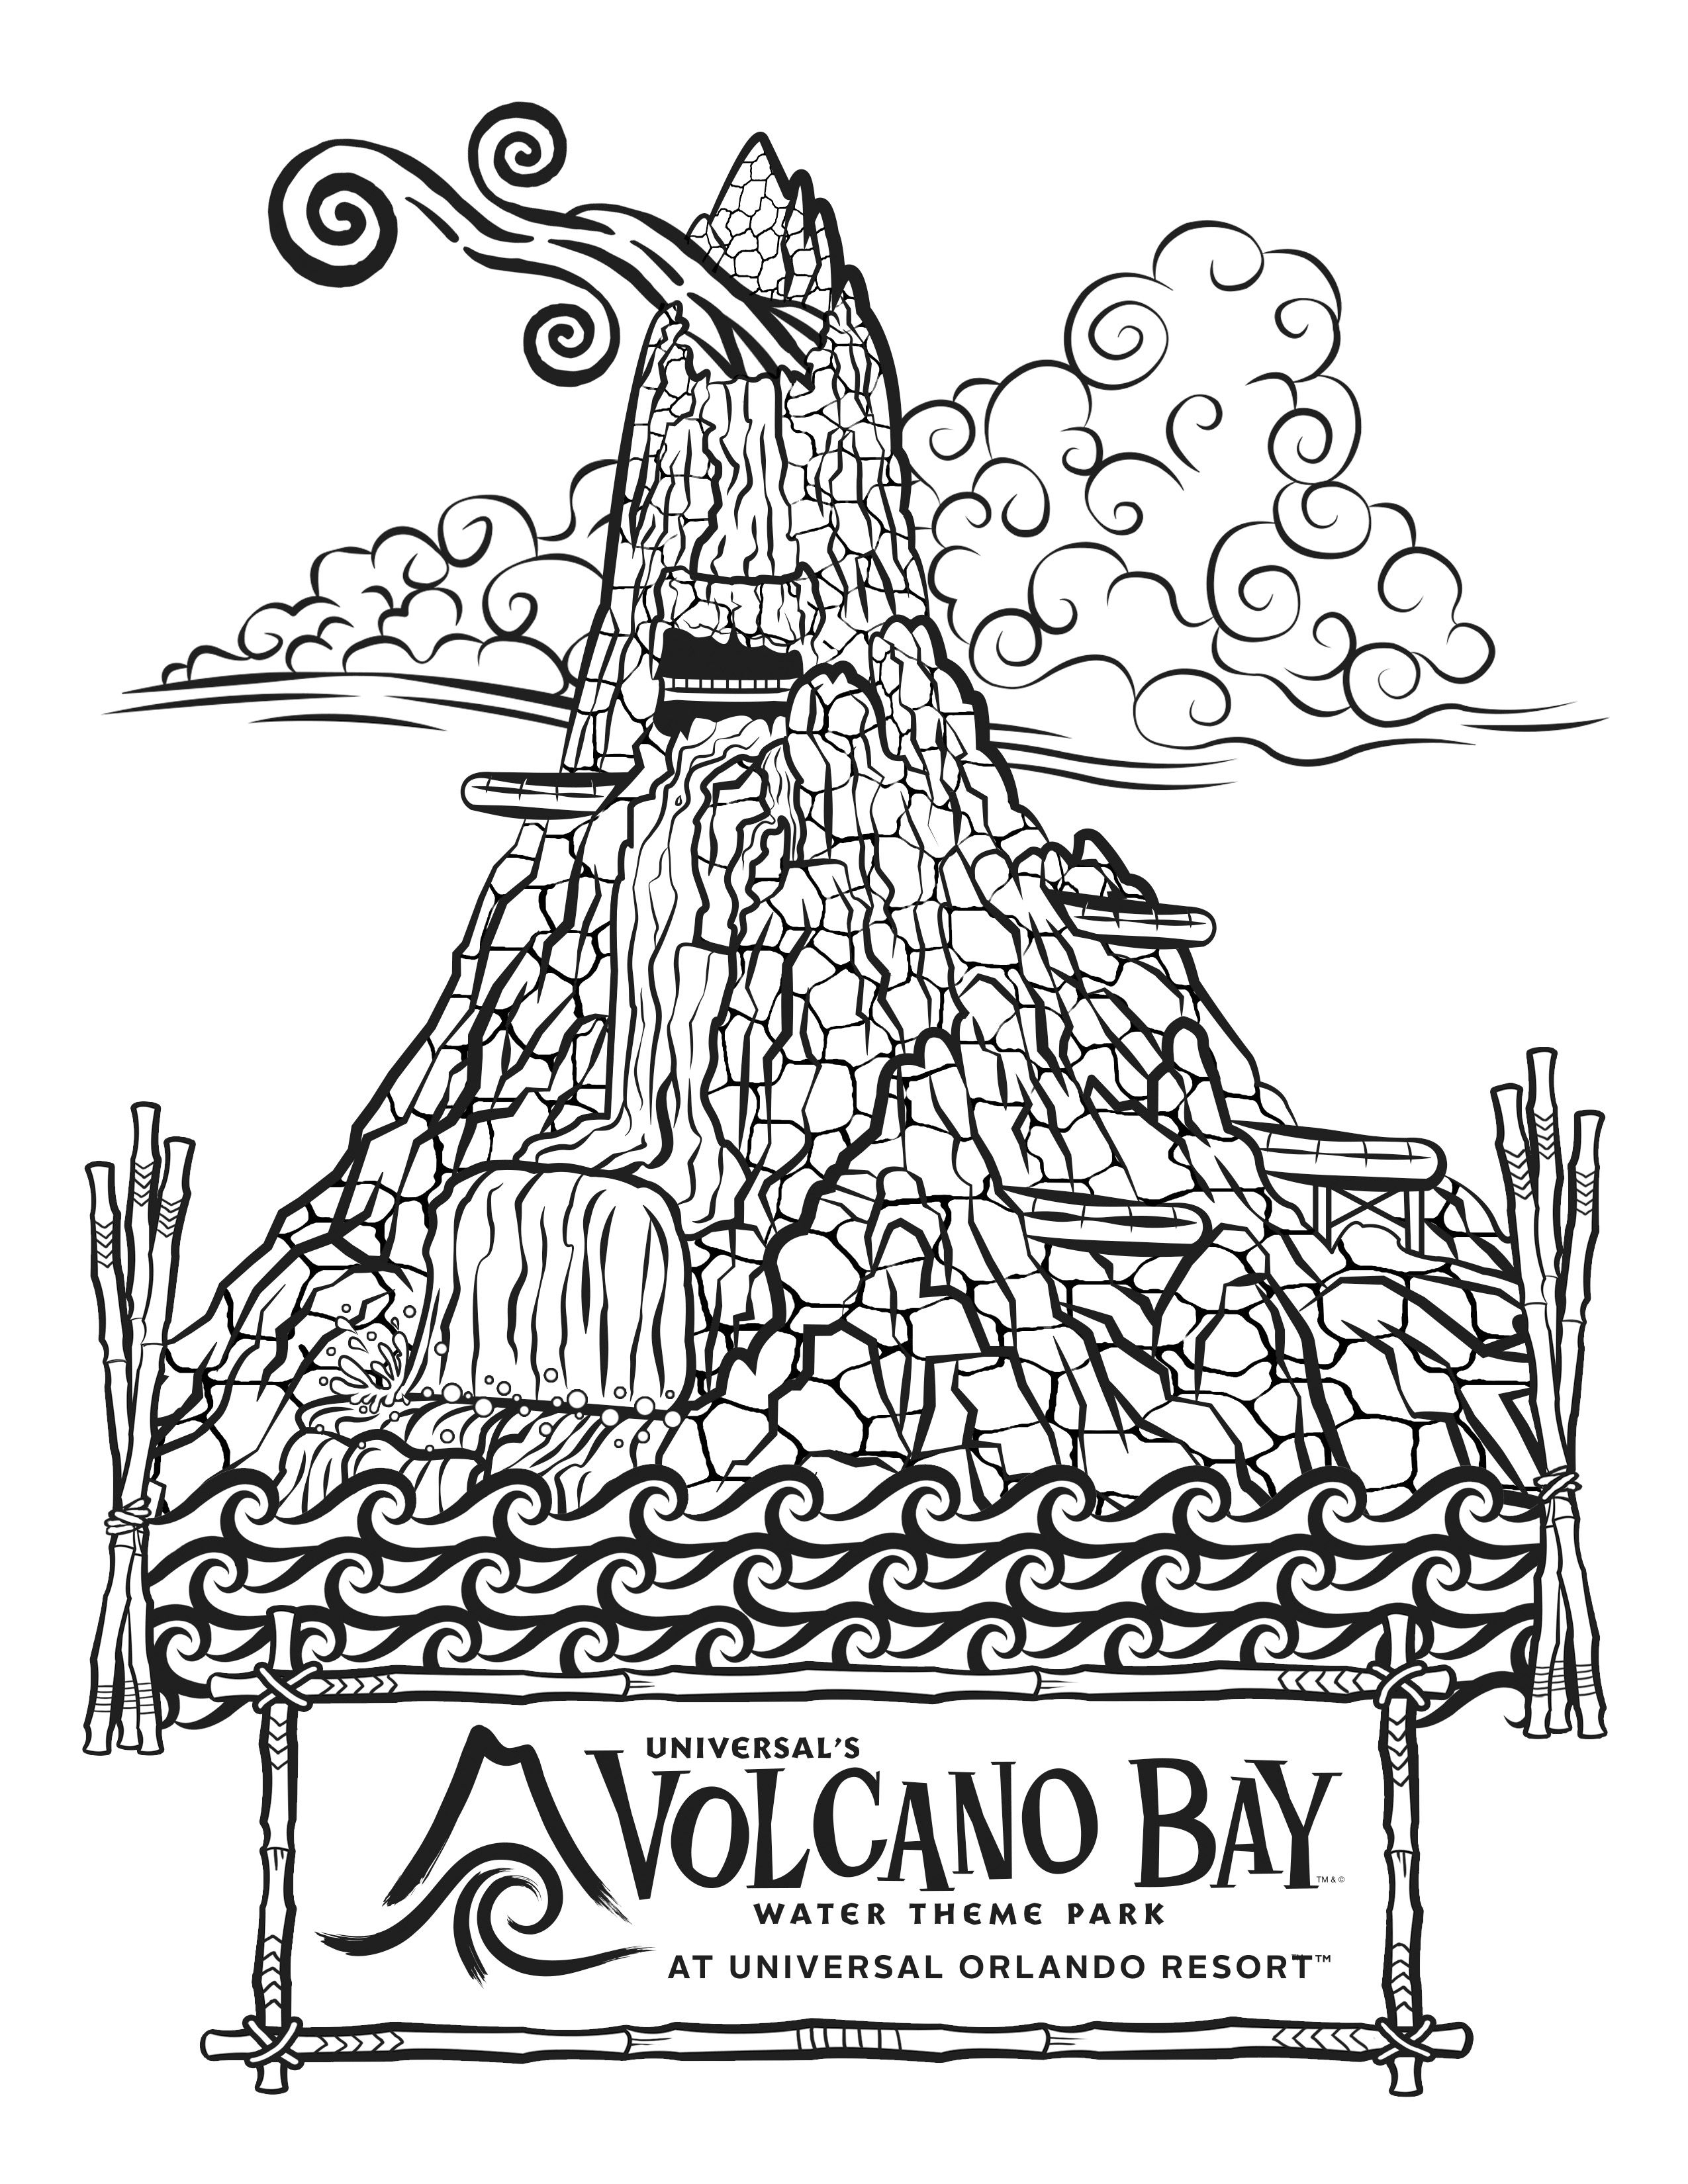 Coloring Pages for Universal's Volcano Bay Water Theme